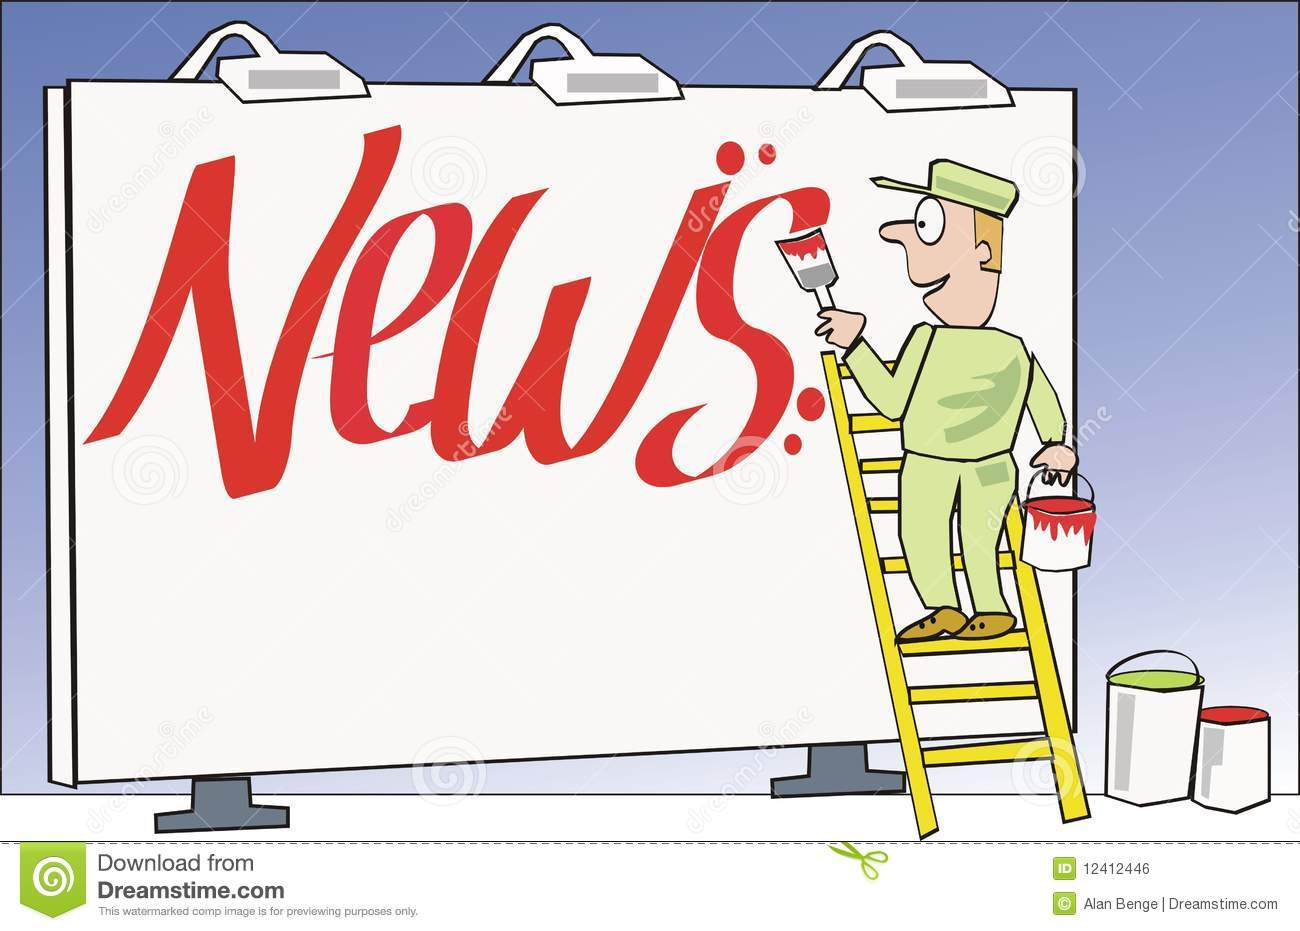 Image result for News cartoon